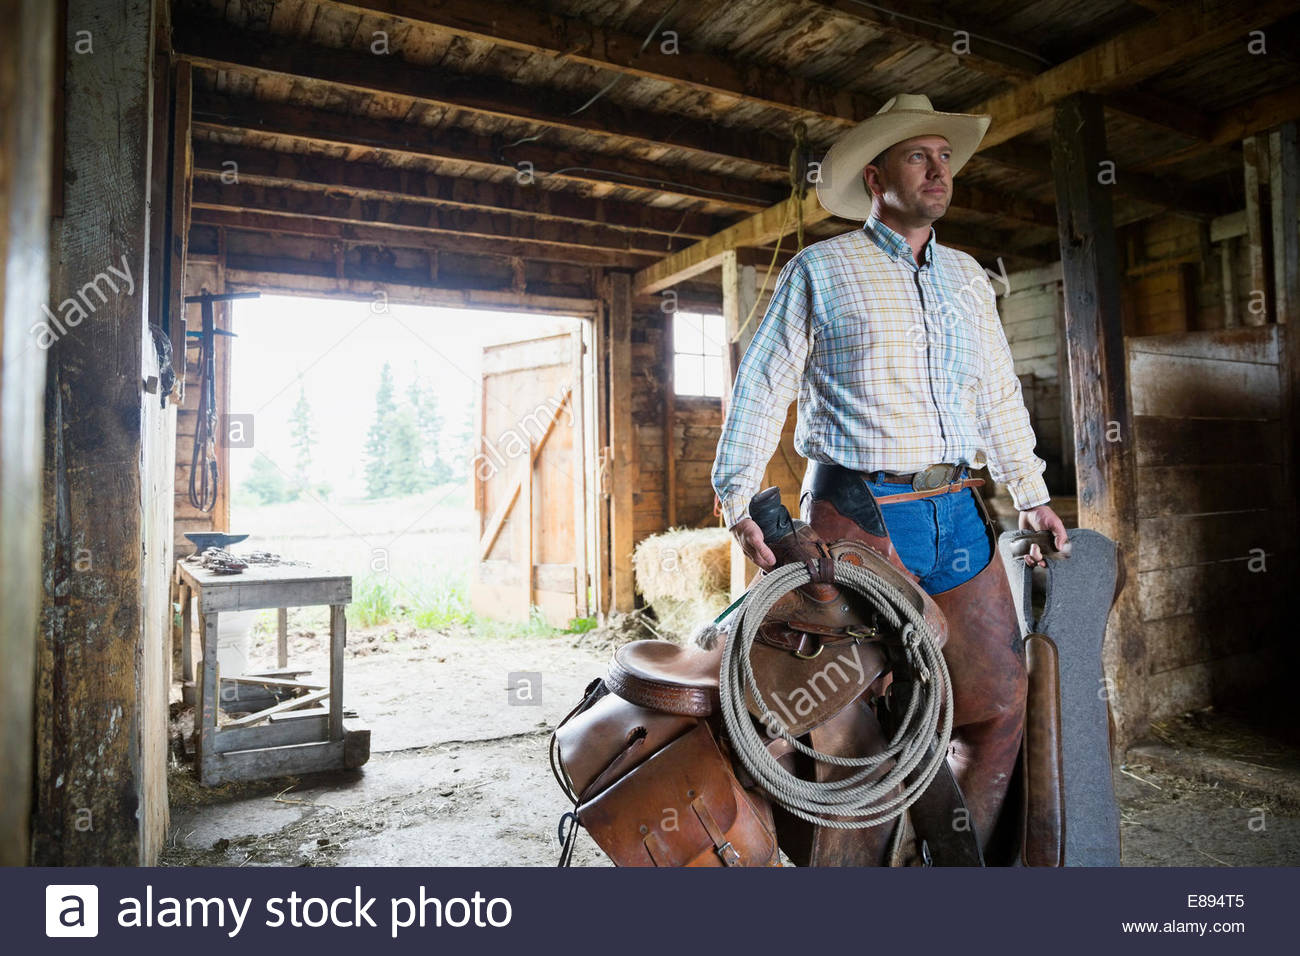 Rancher carrying saddle and tack in barn - Stock Image